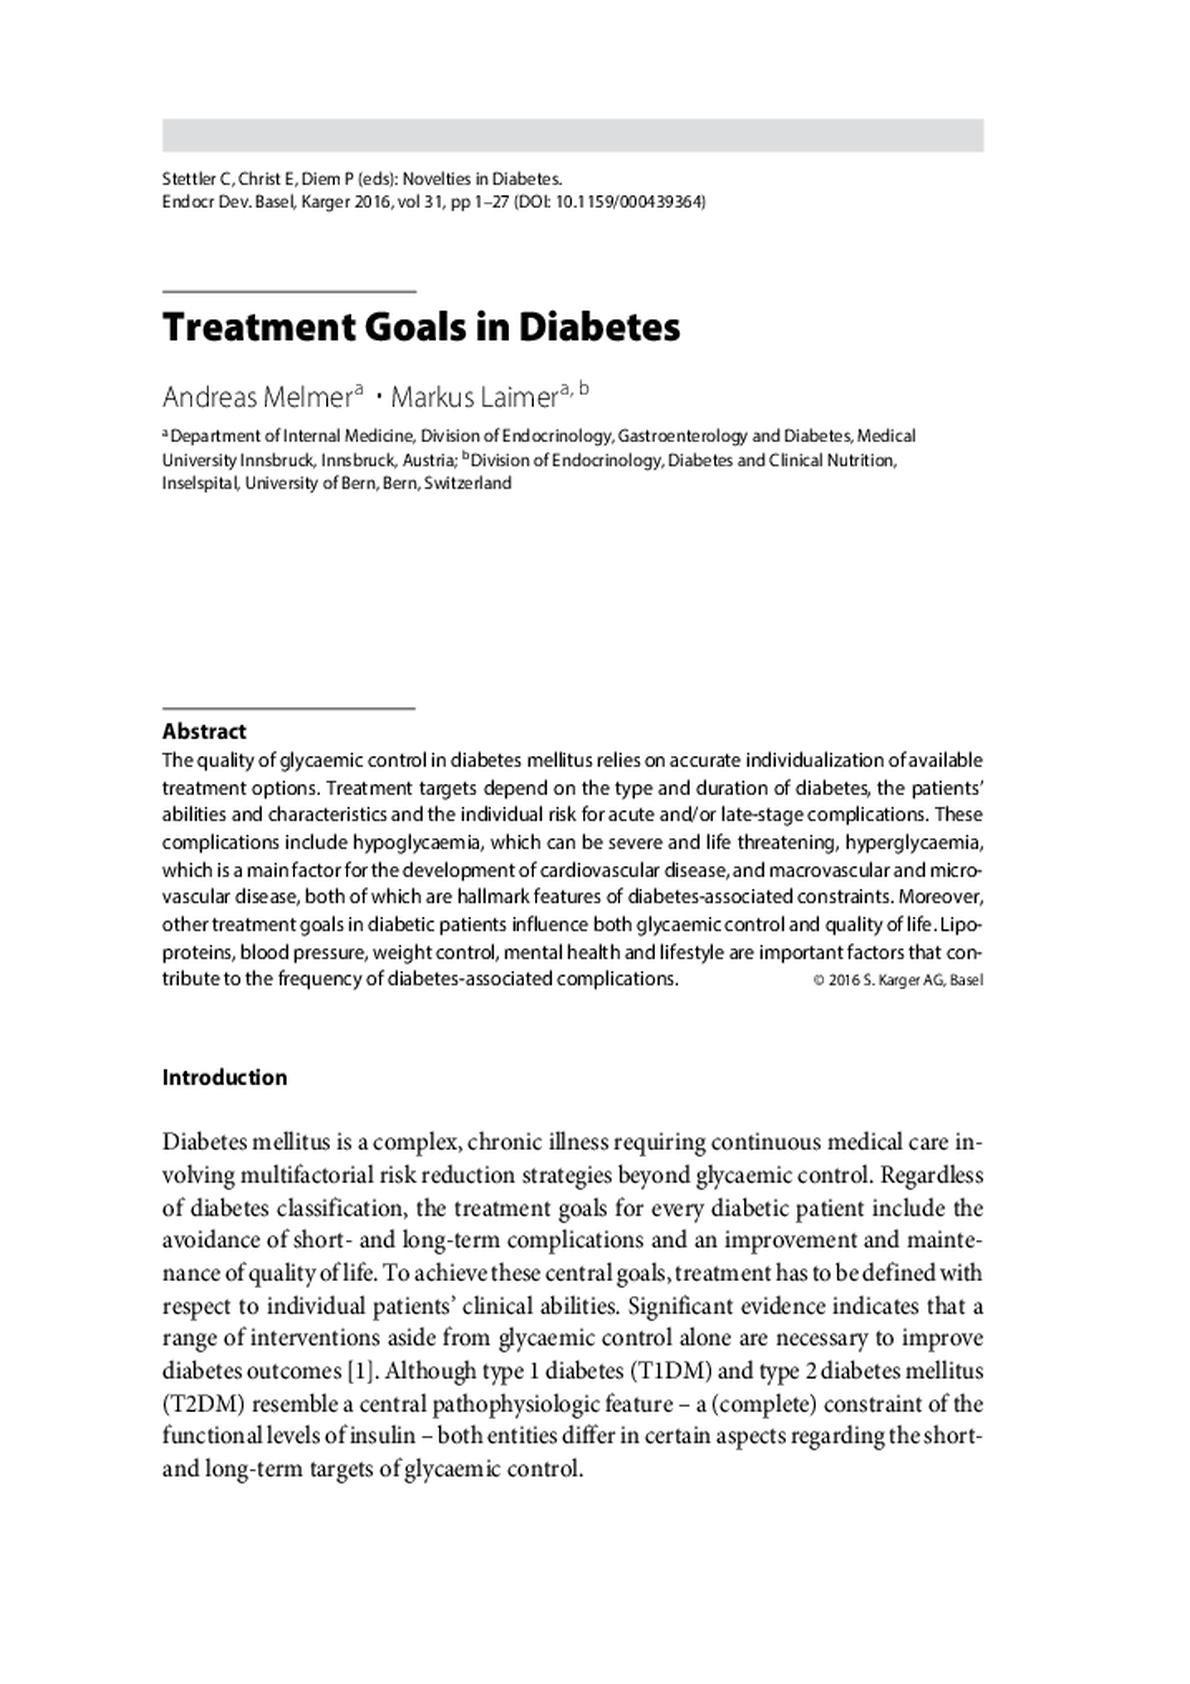 What Is The Goal Of Treating Diabetes?